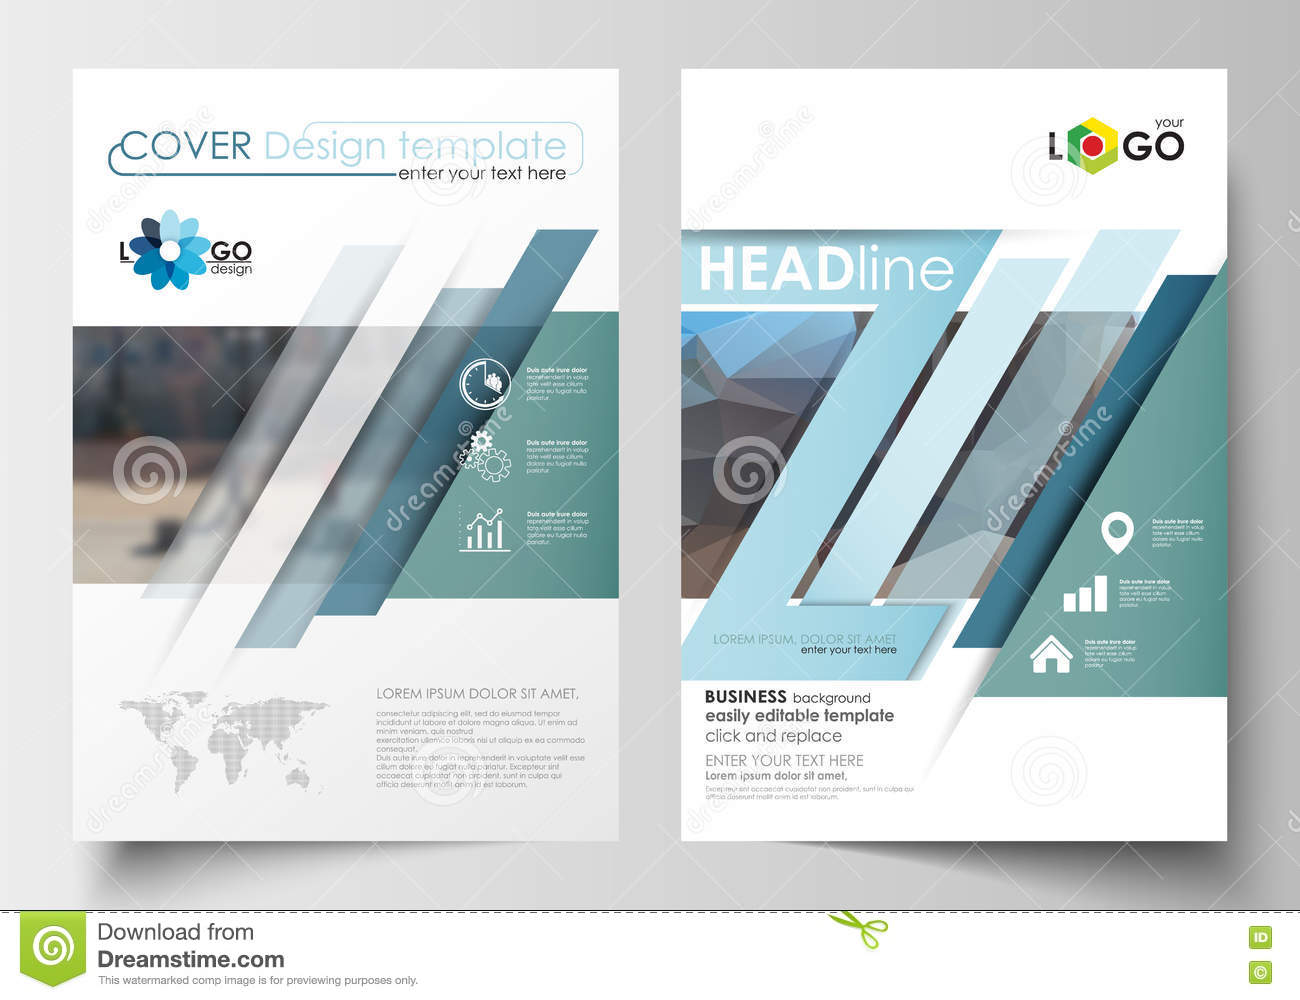 templates for brochure magazine flyer booklet or annual report templates for brochure magazine flyer booklet or annual report cover design template